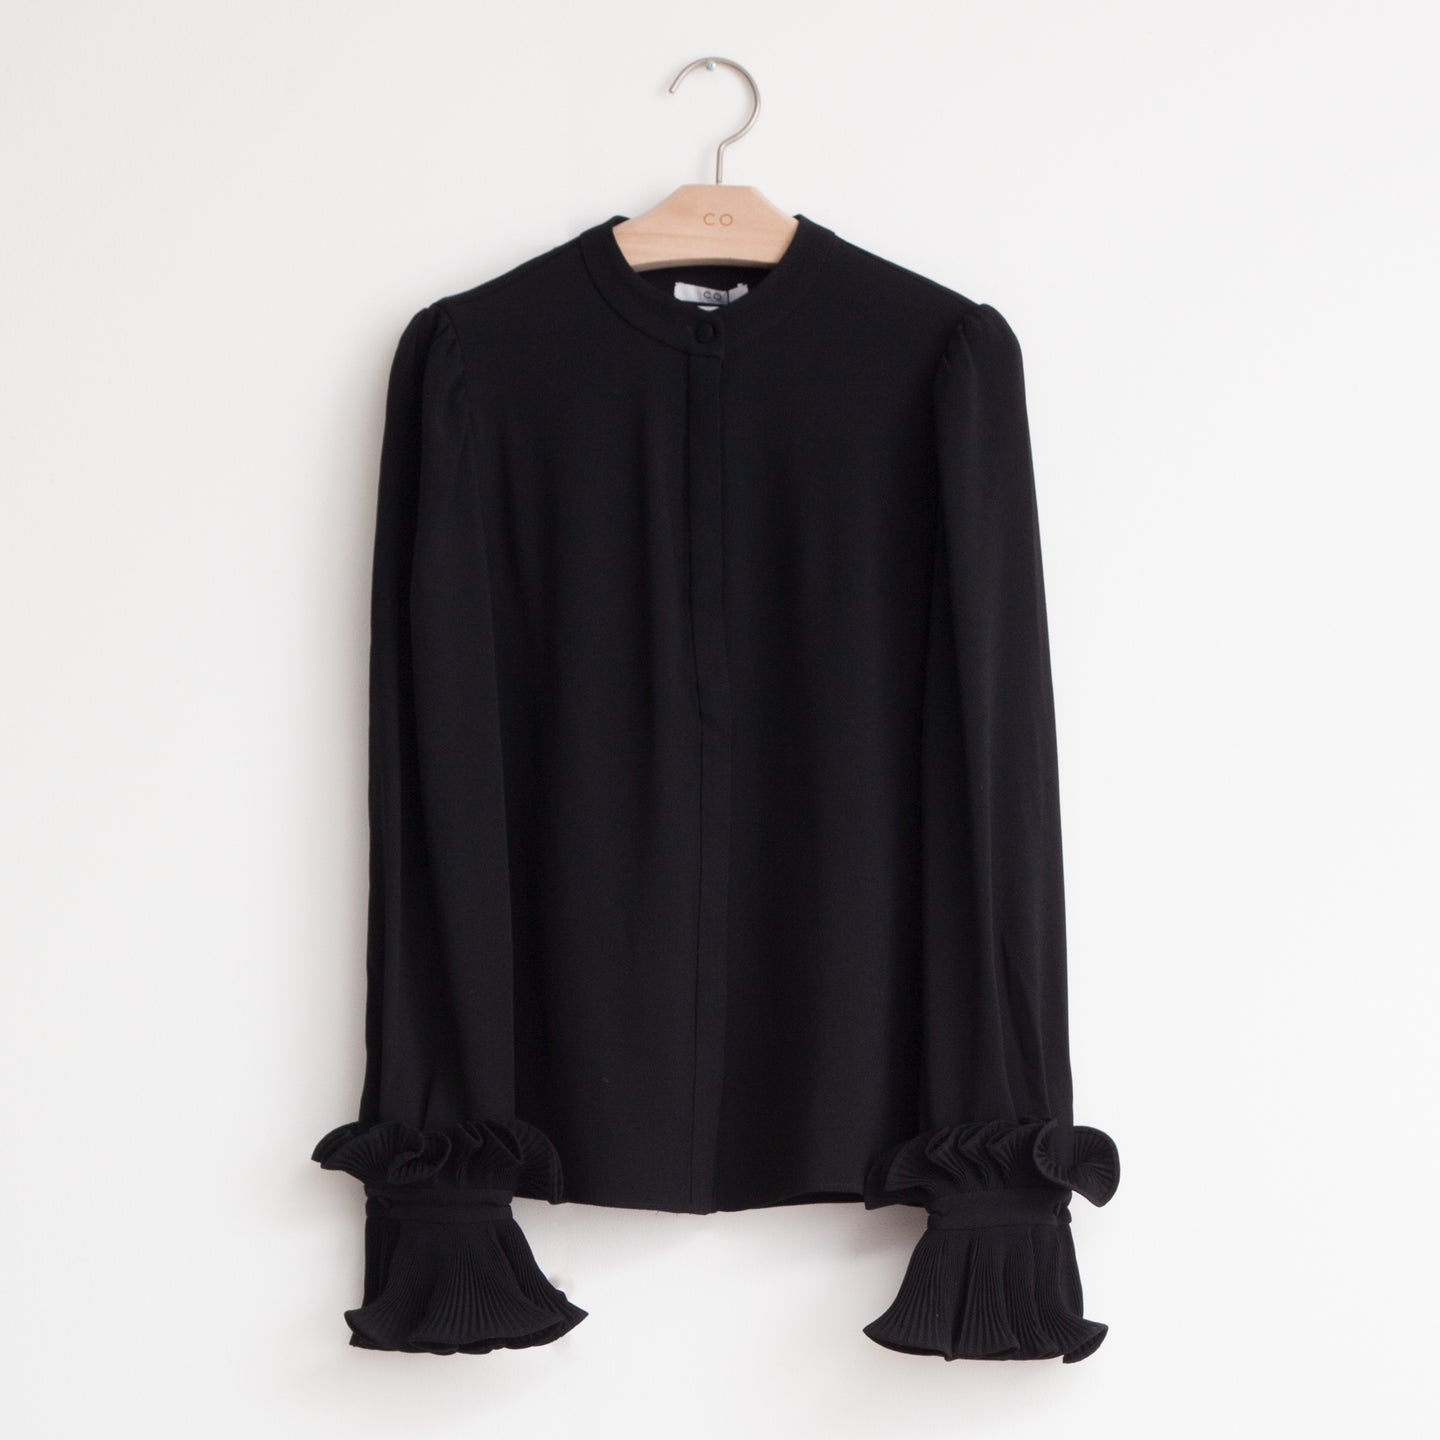 Long sleeve button front shirt with exaggerated pleated wrist detail in black japanese crepe - CO